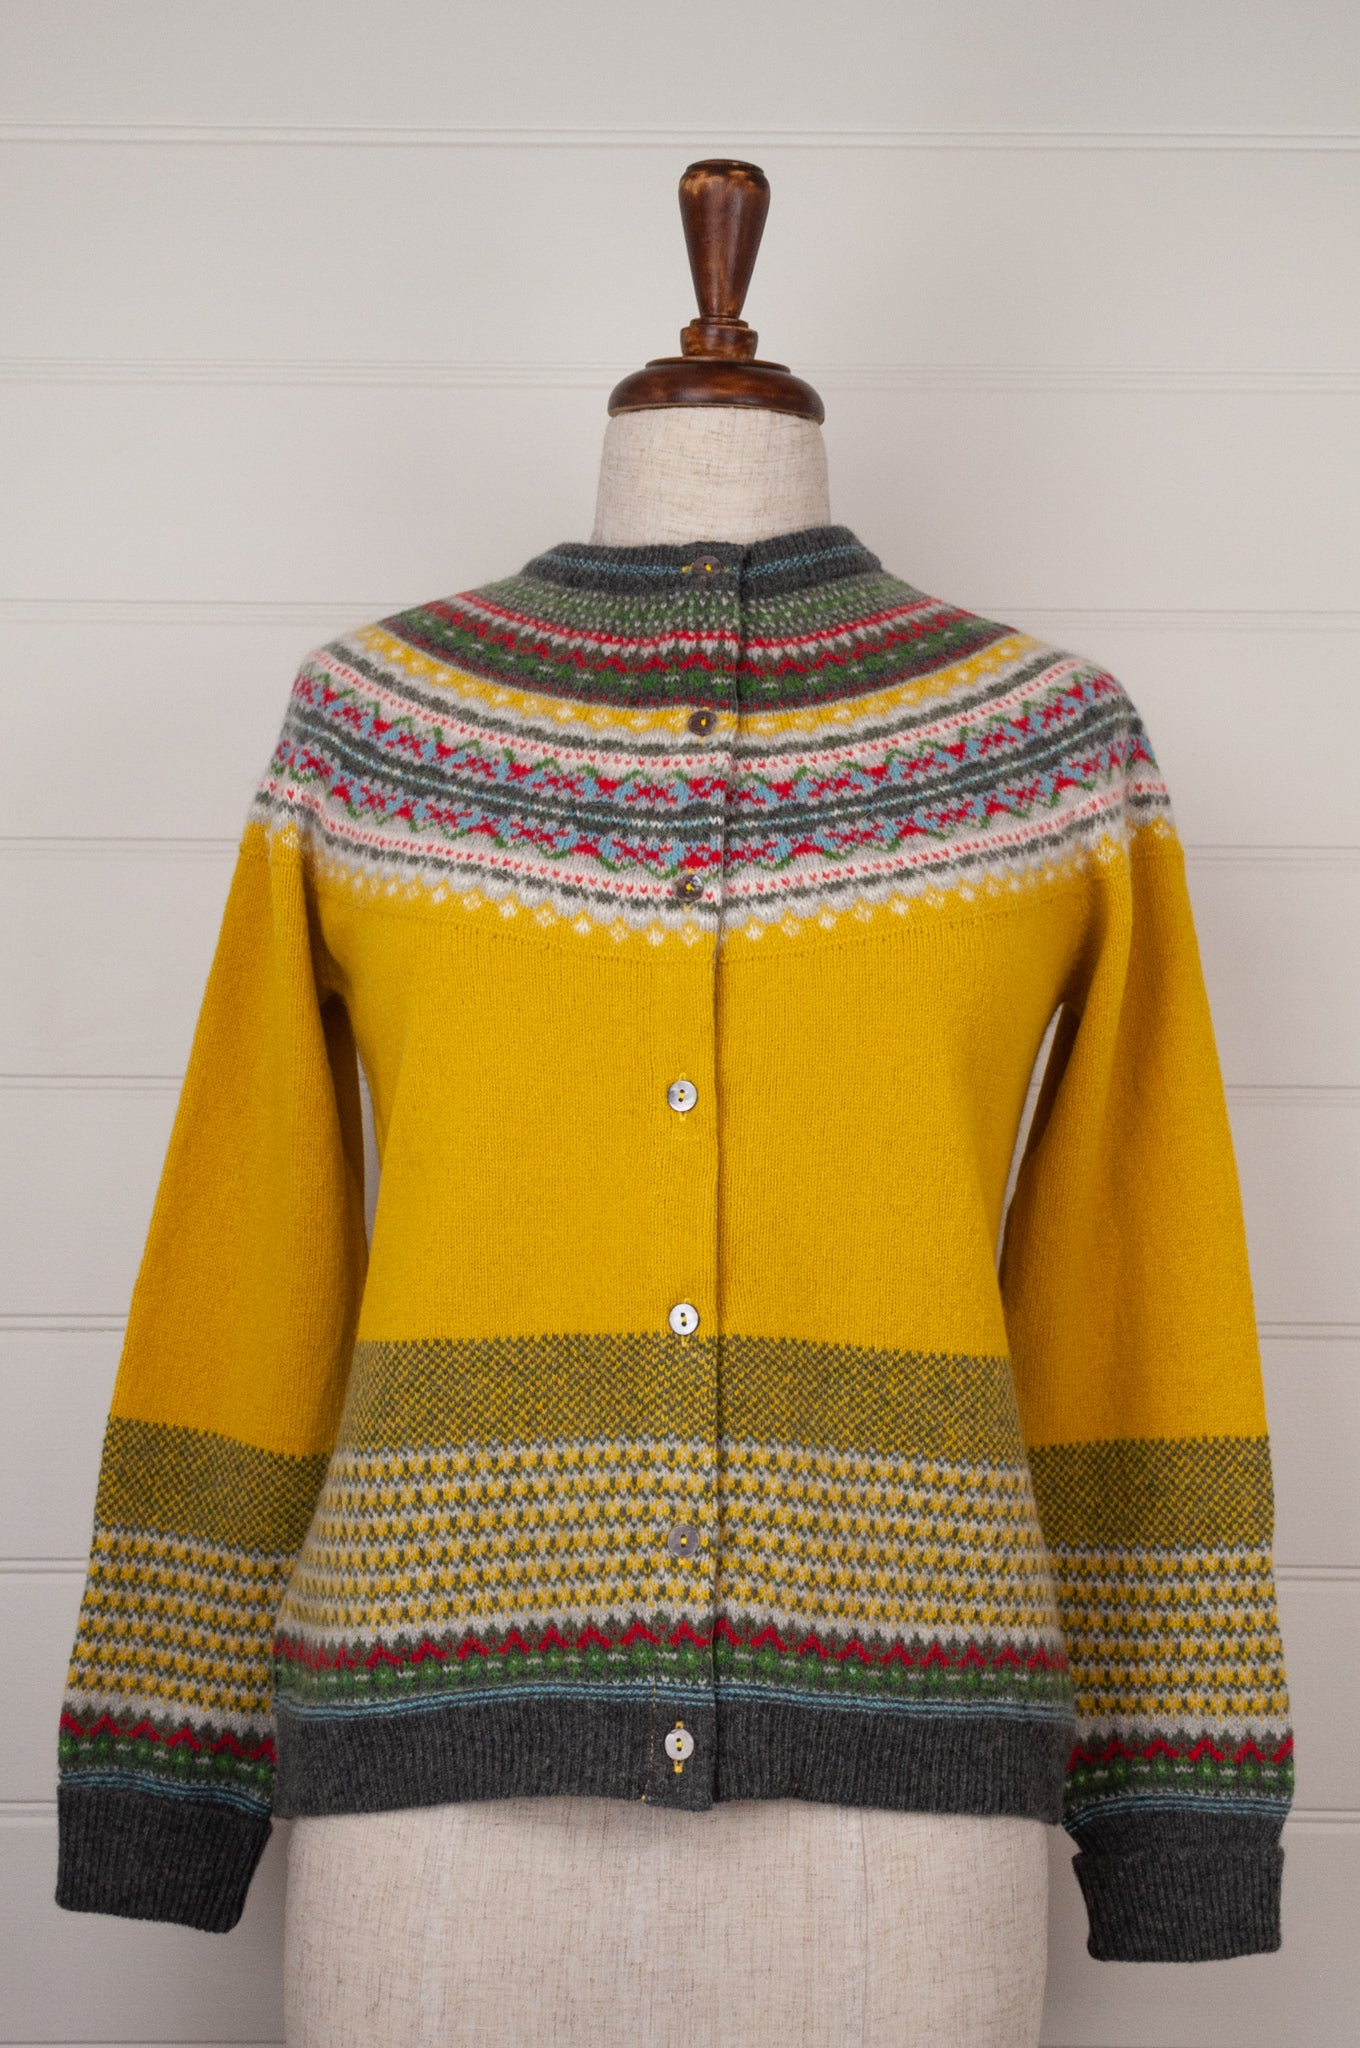 Made in Scotland, Eribé pure wool fairisle cardigan in Picalilli, golden mustard with patterned yoke and trim in vermilion red, leaf green, sky blue, white and charcoal.